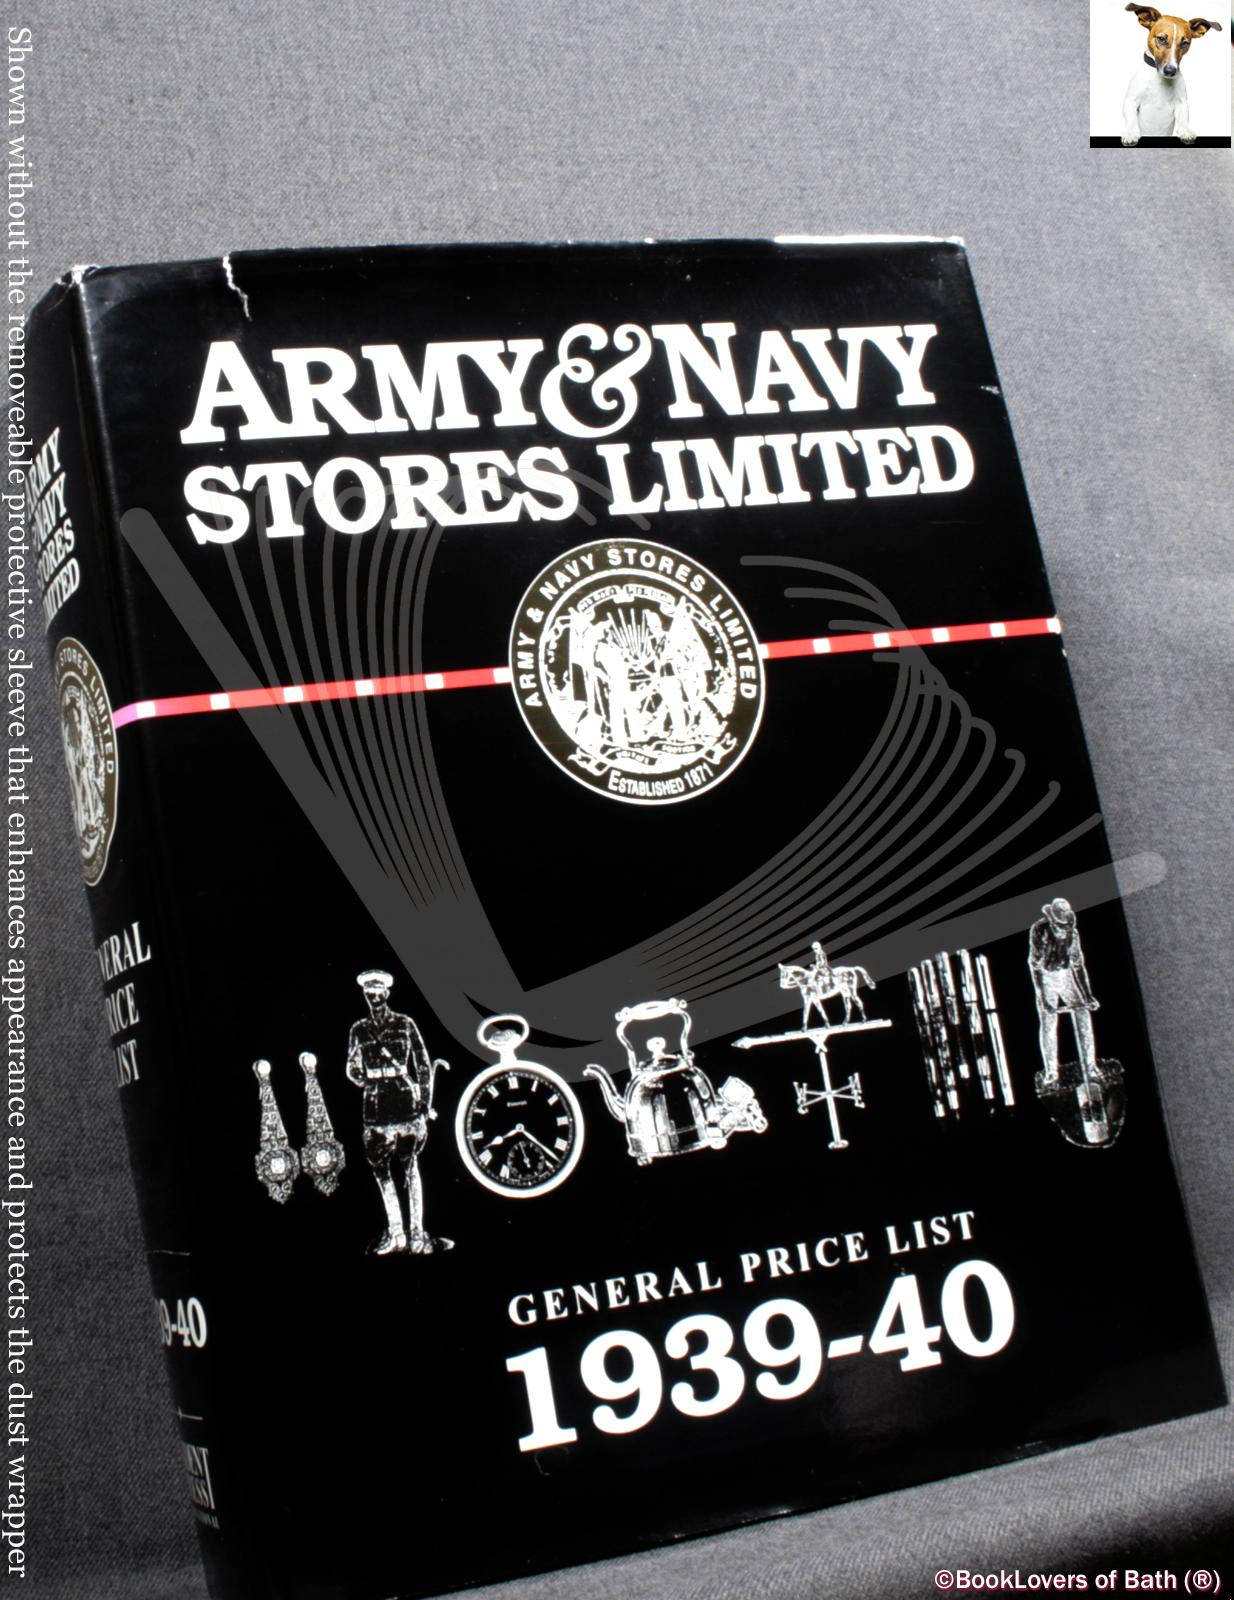 Army & Navy Stores Limited General Price List 1939-40 - Anon.